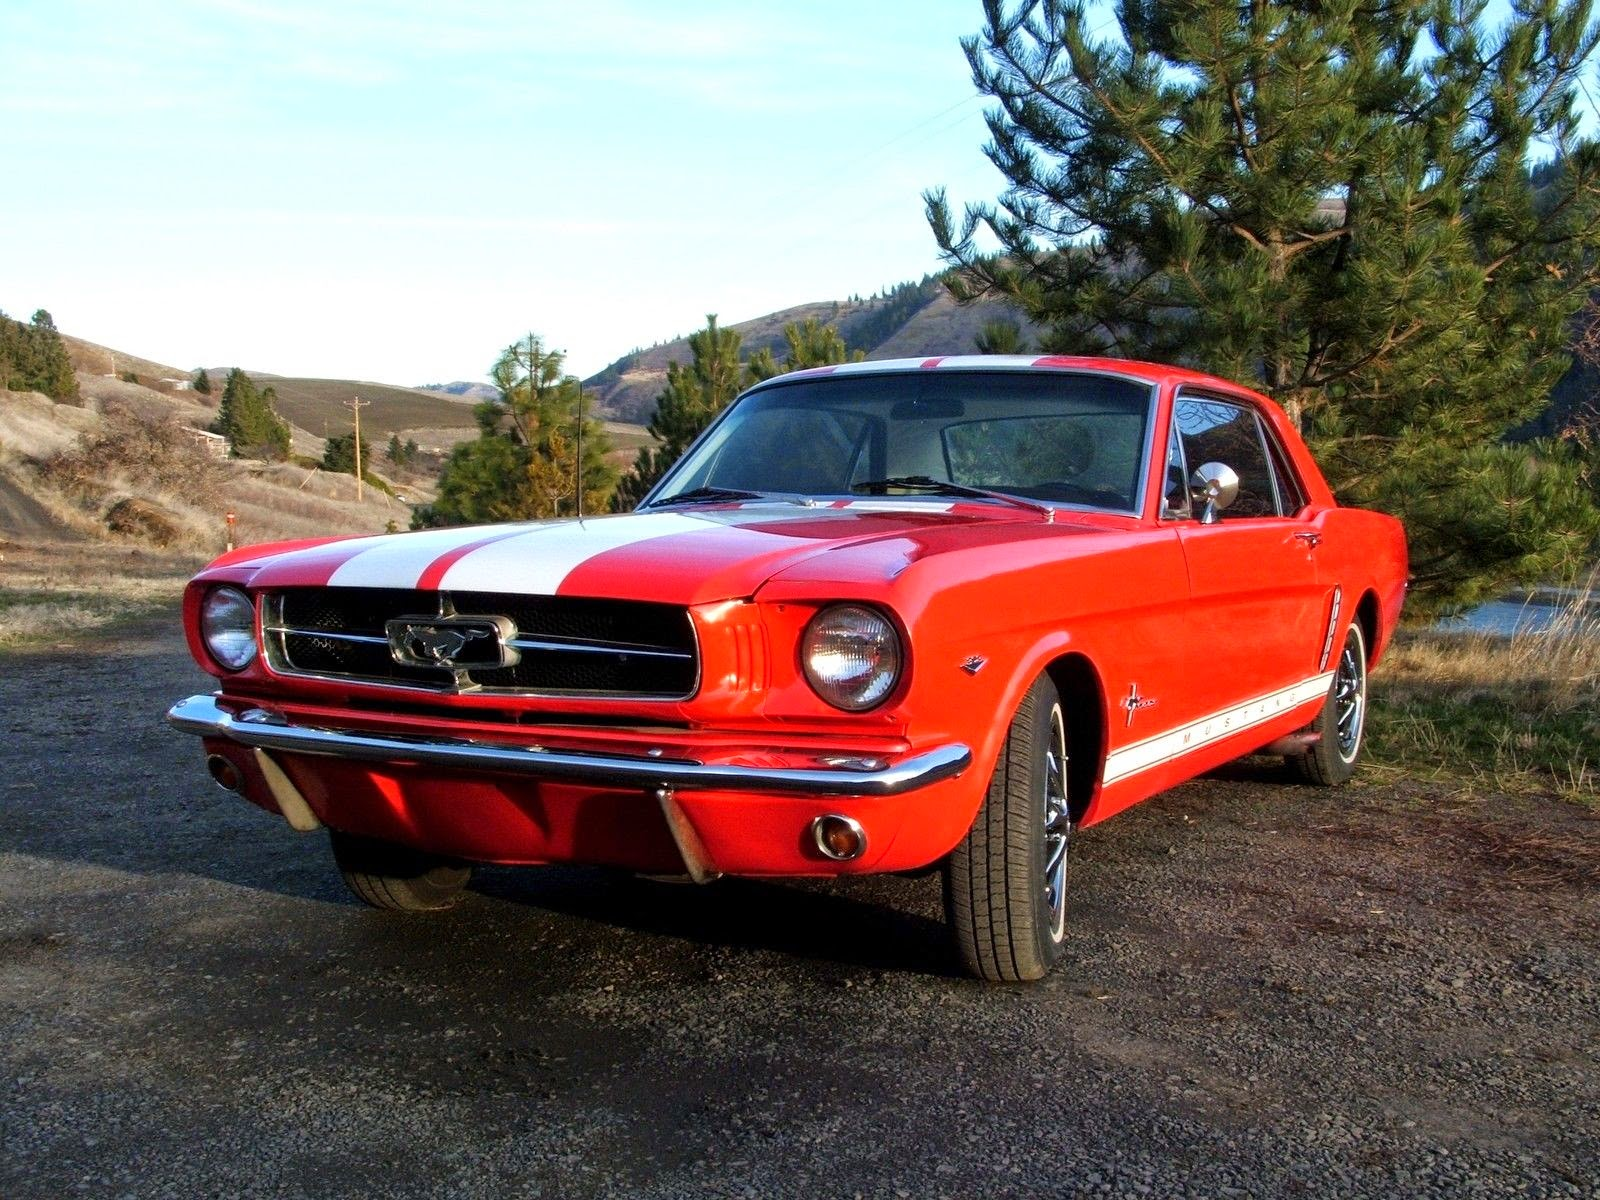 All American Classic Cars 1965 Ford Mustang 2 Door Hardtop